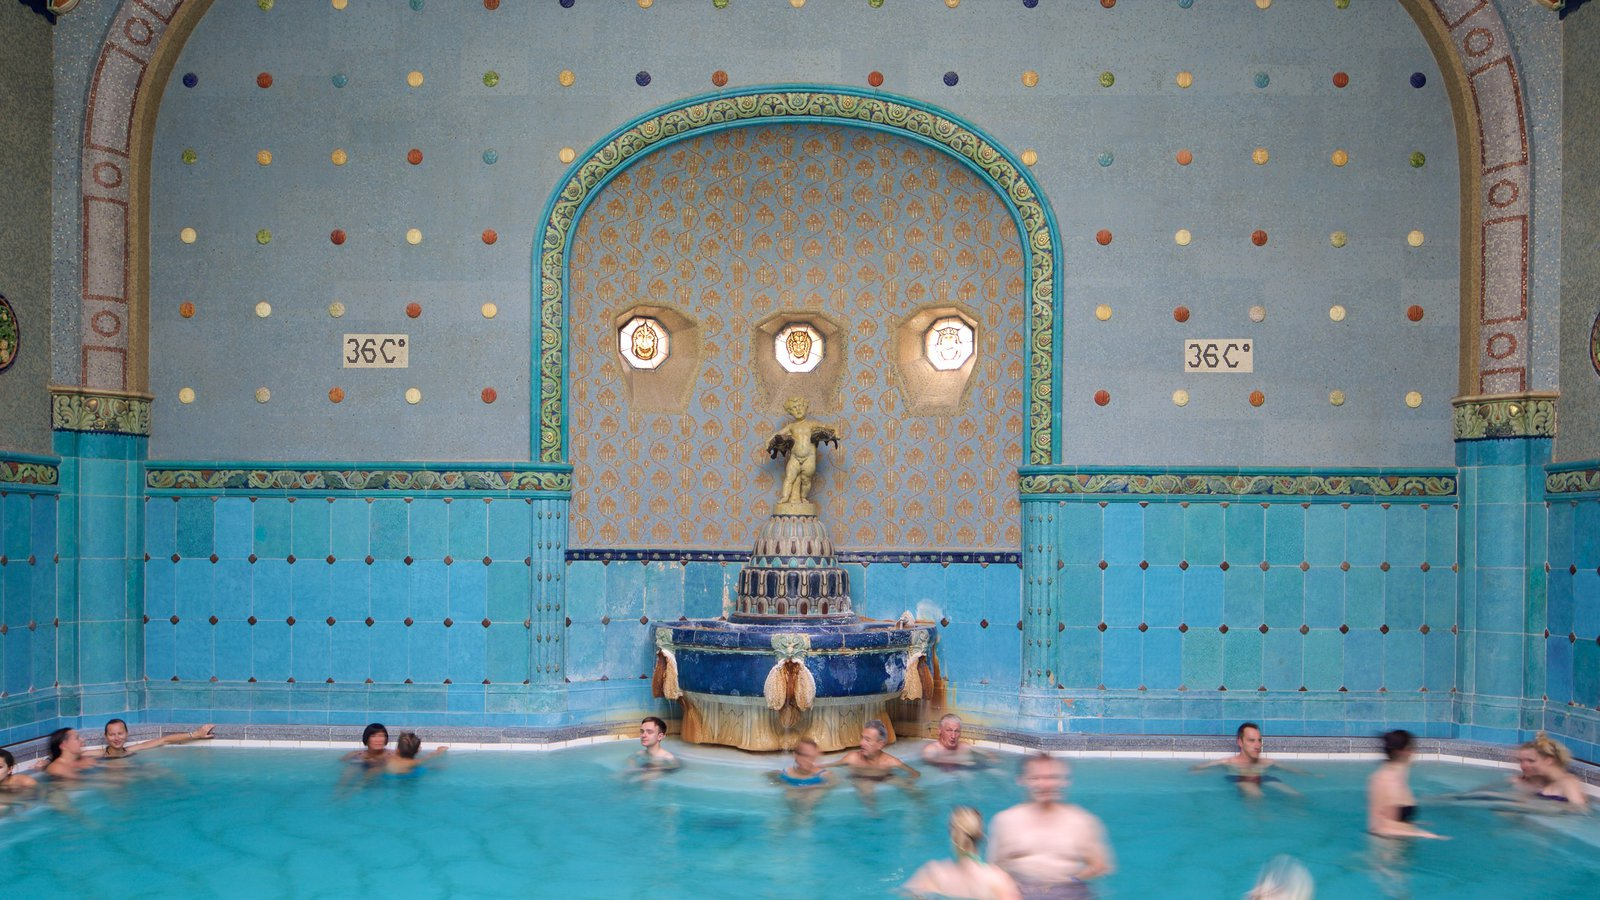 Gellert Thermal Baths and Swimming Pool Pictures: View Photos ...